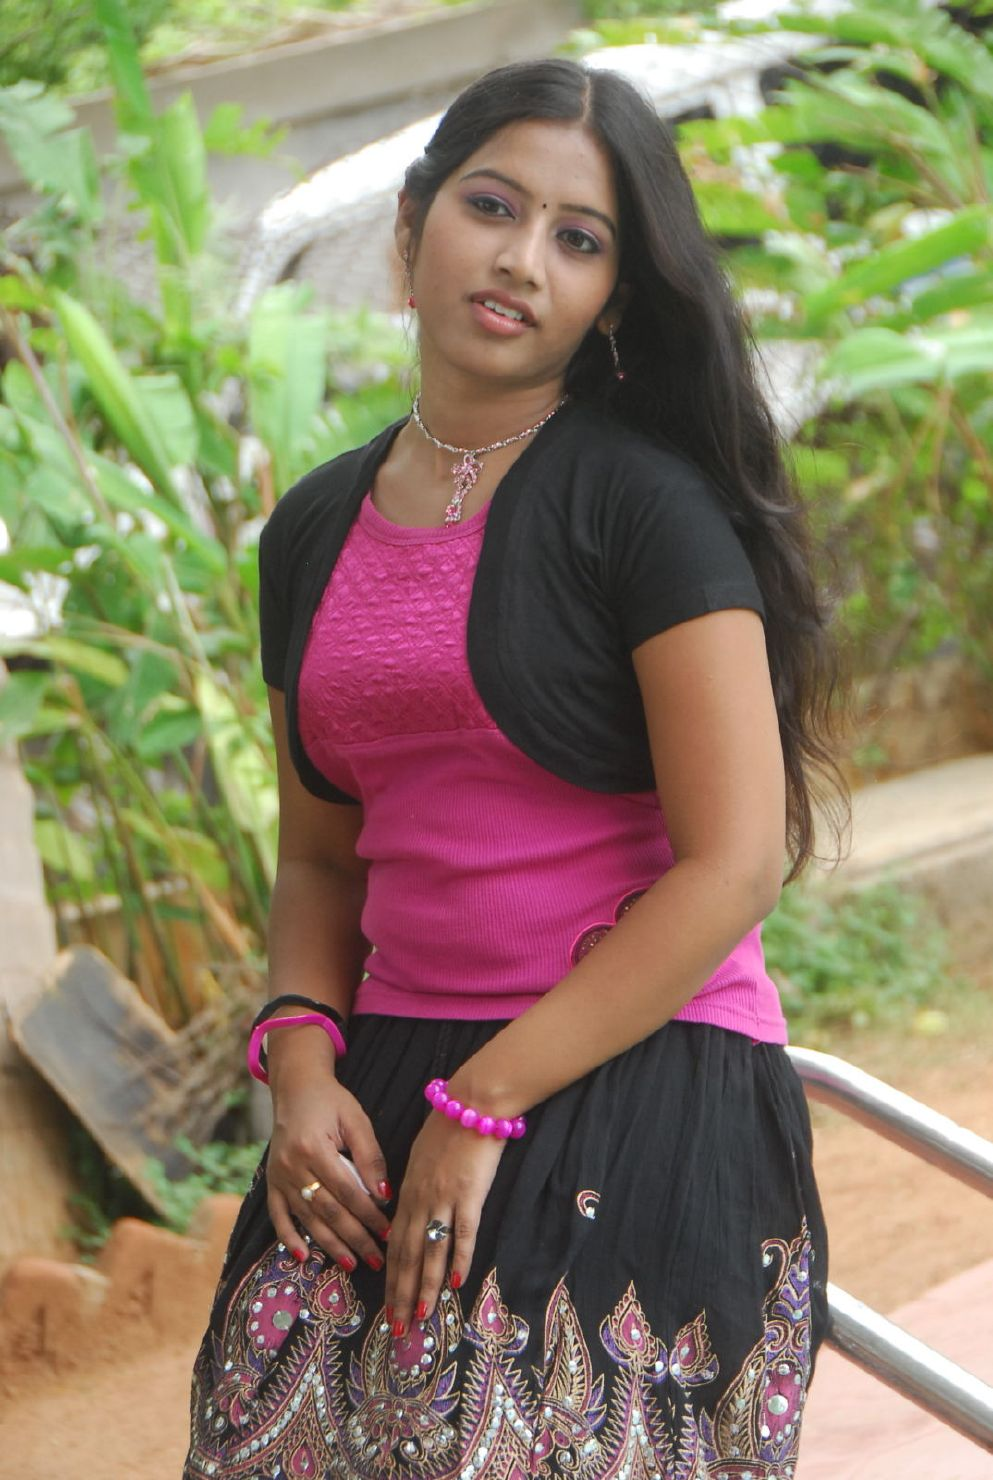 Indian Young Teen Model Fashion Glamour Model: Actress Priya Stills,South Indian Teen Actress Priya Photos